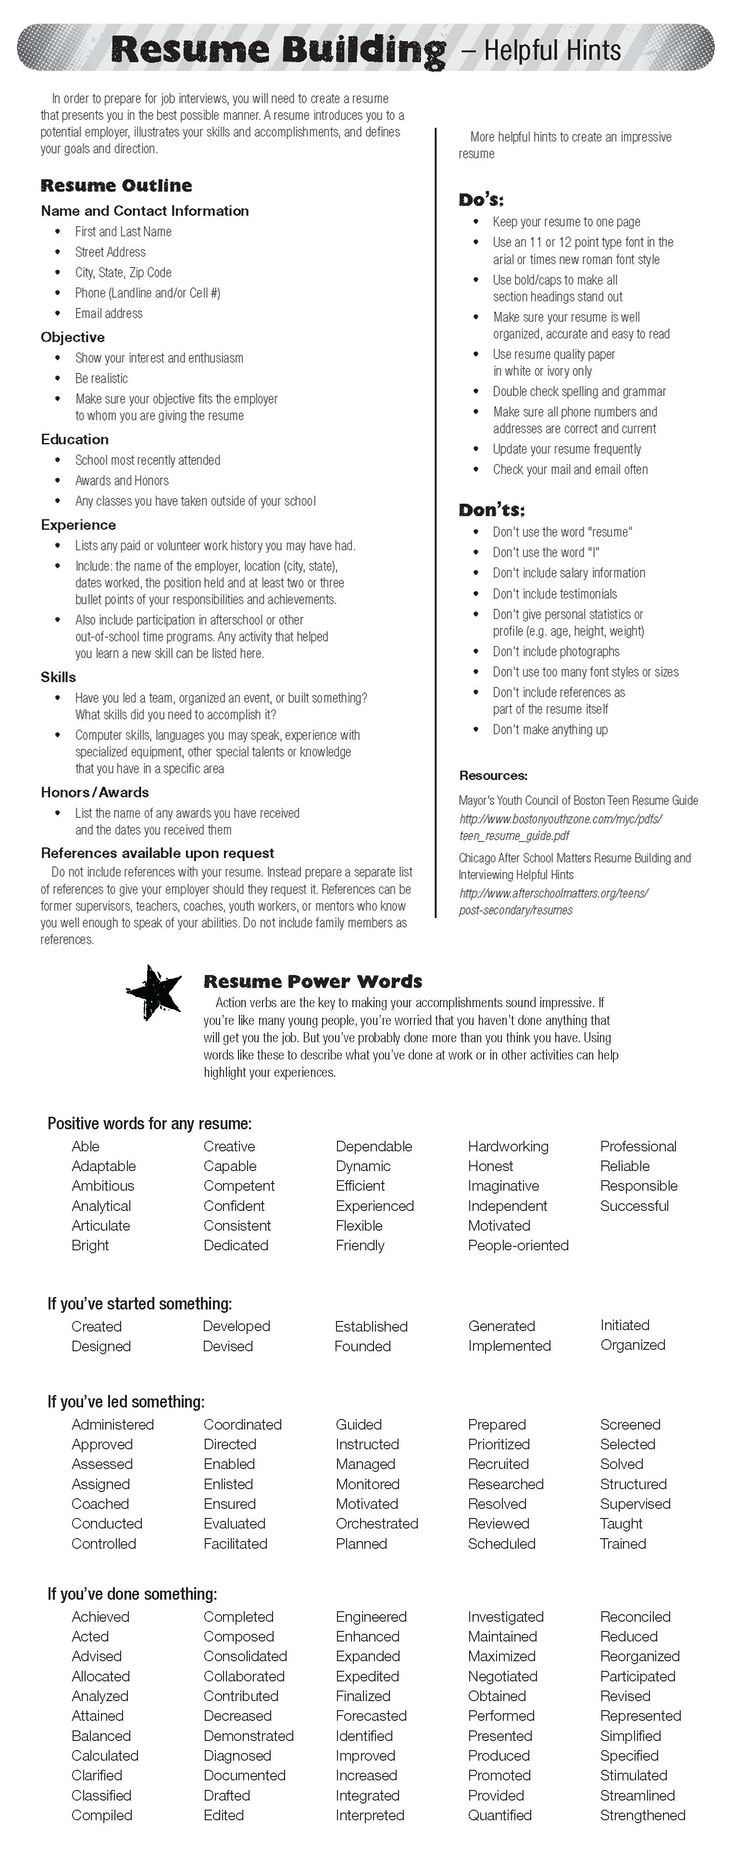 Opposenewapstandardsus  Unique  Ideas About Resume On Pinterest  Cv Format Resume Cv And  With Great  Ideas About Resume On Pinterest  Cv Format Resume Cv And Resume Templates With Captivating Medical Receptionist Resume Sample Also Objective Statement On A Resume In Addition Call Center Customer Service Representative Resume And College Student Resume Samples As Well As Maintenance Resumes Additionally Programmer Resume Example From Pinterestcom With Opposenewapstandardsus  Great  Ideas About Resume On Pinterest  Cv Format Resume Cv And  With Captivating  Ideas About Resume On Pinterest  Cv Format Resume Cv And Resume Templates And Unique Medical Receptionist Resume Sample Also Objective Statement On A Resume In Addition Call Center Customer Service Representative Resume From Pinterestcom